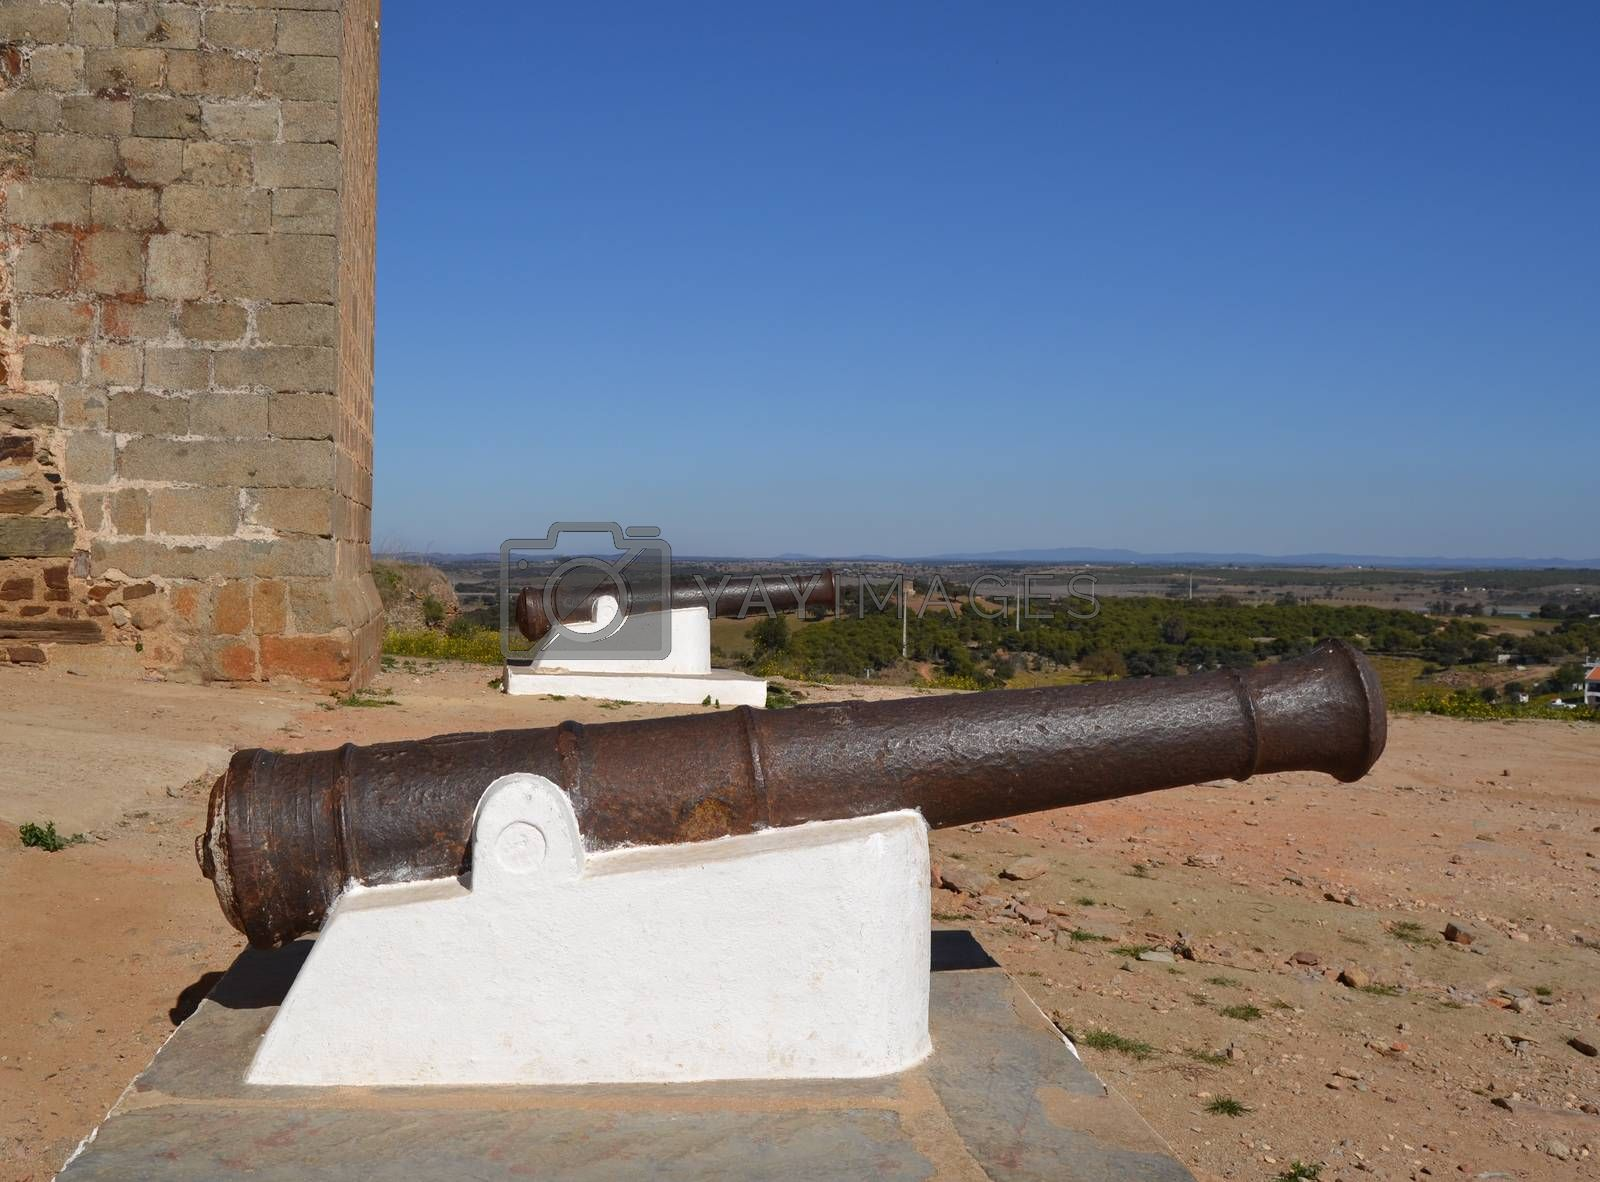 Old cannon near a castle that was used in antiquity for defensive warfare maneuvers